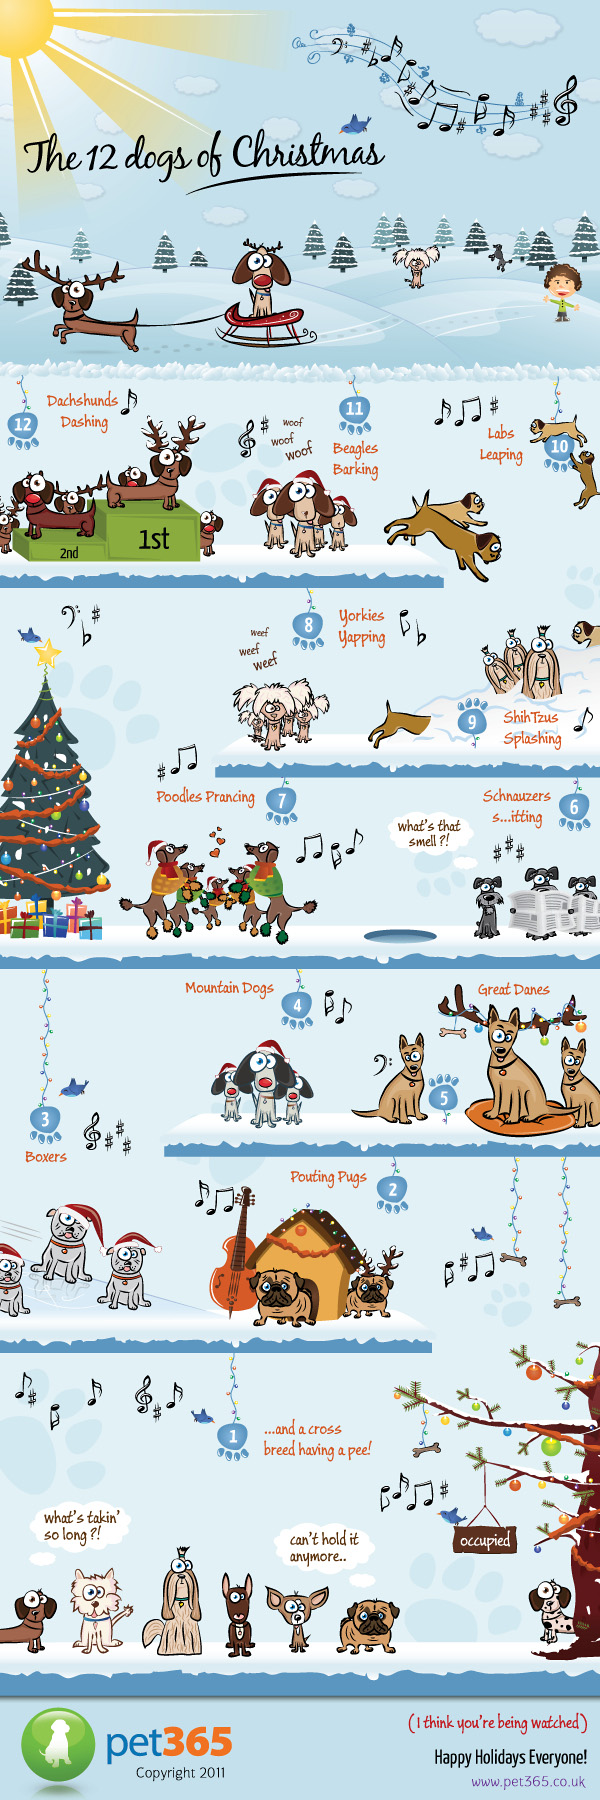 12 dogs of Christmas Fun Infographic